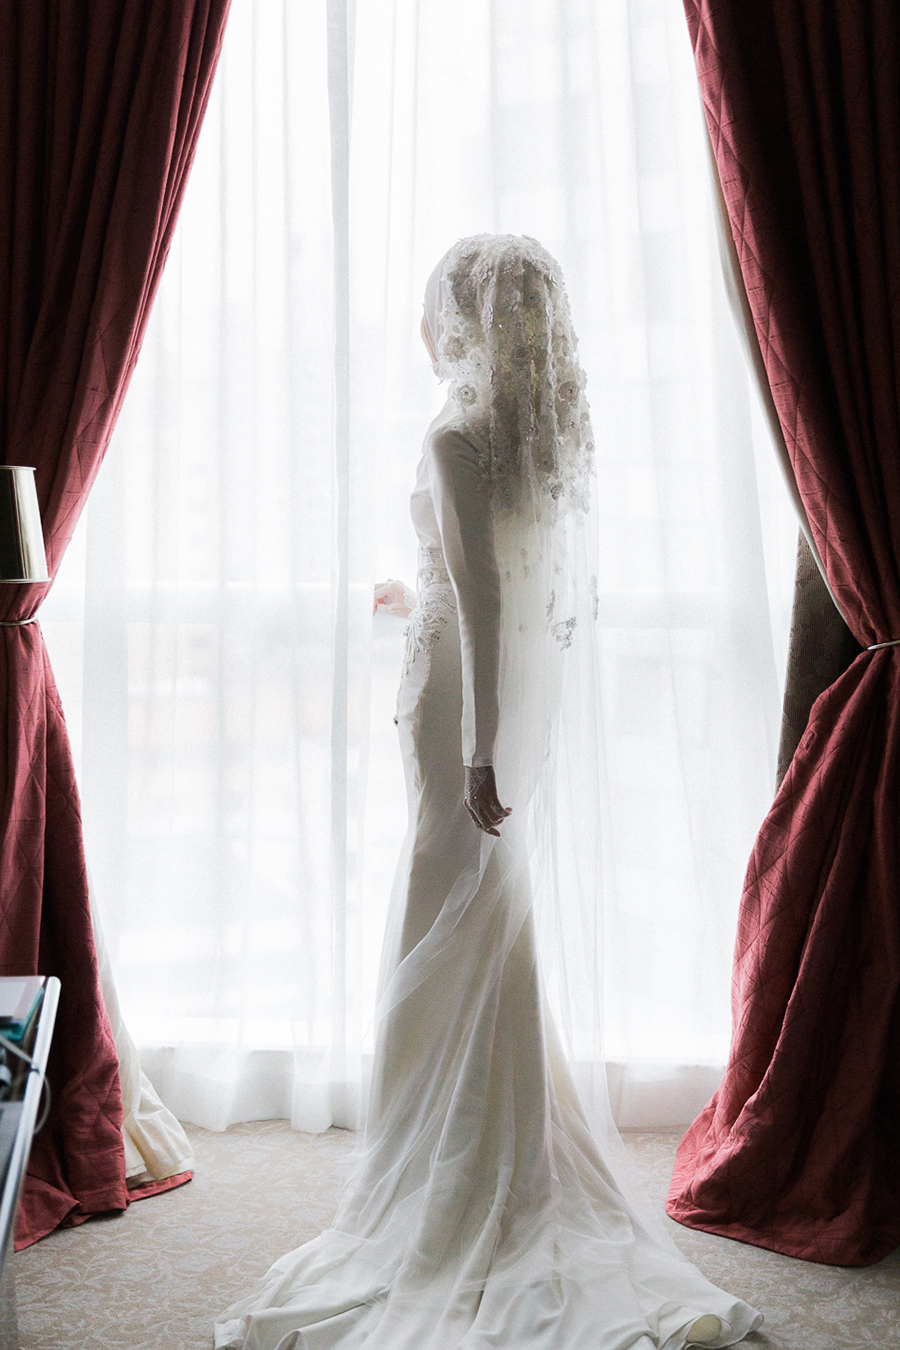 Chen_Sands_Photo_Destination_Wedding_Photographer_StRegis_Singapore-21.jpg